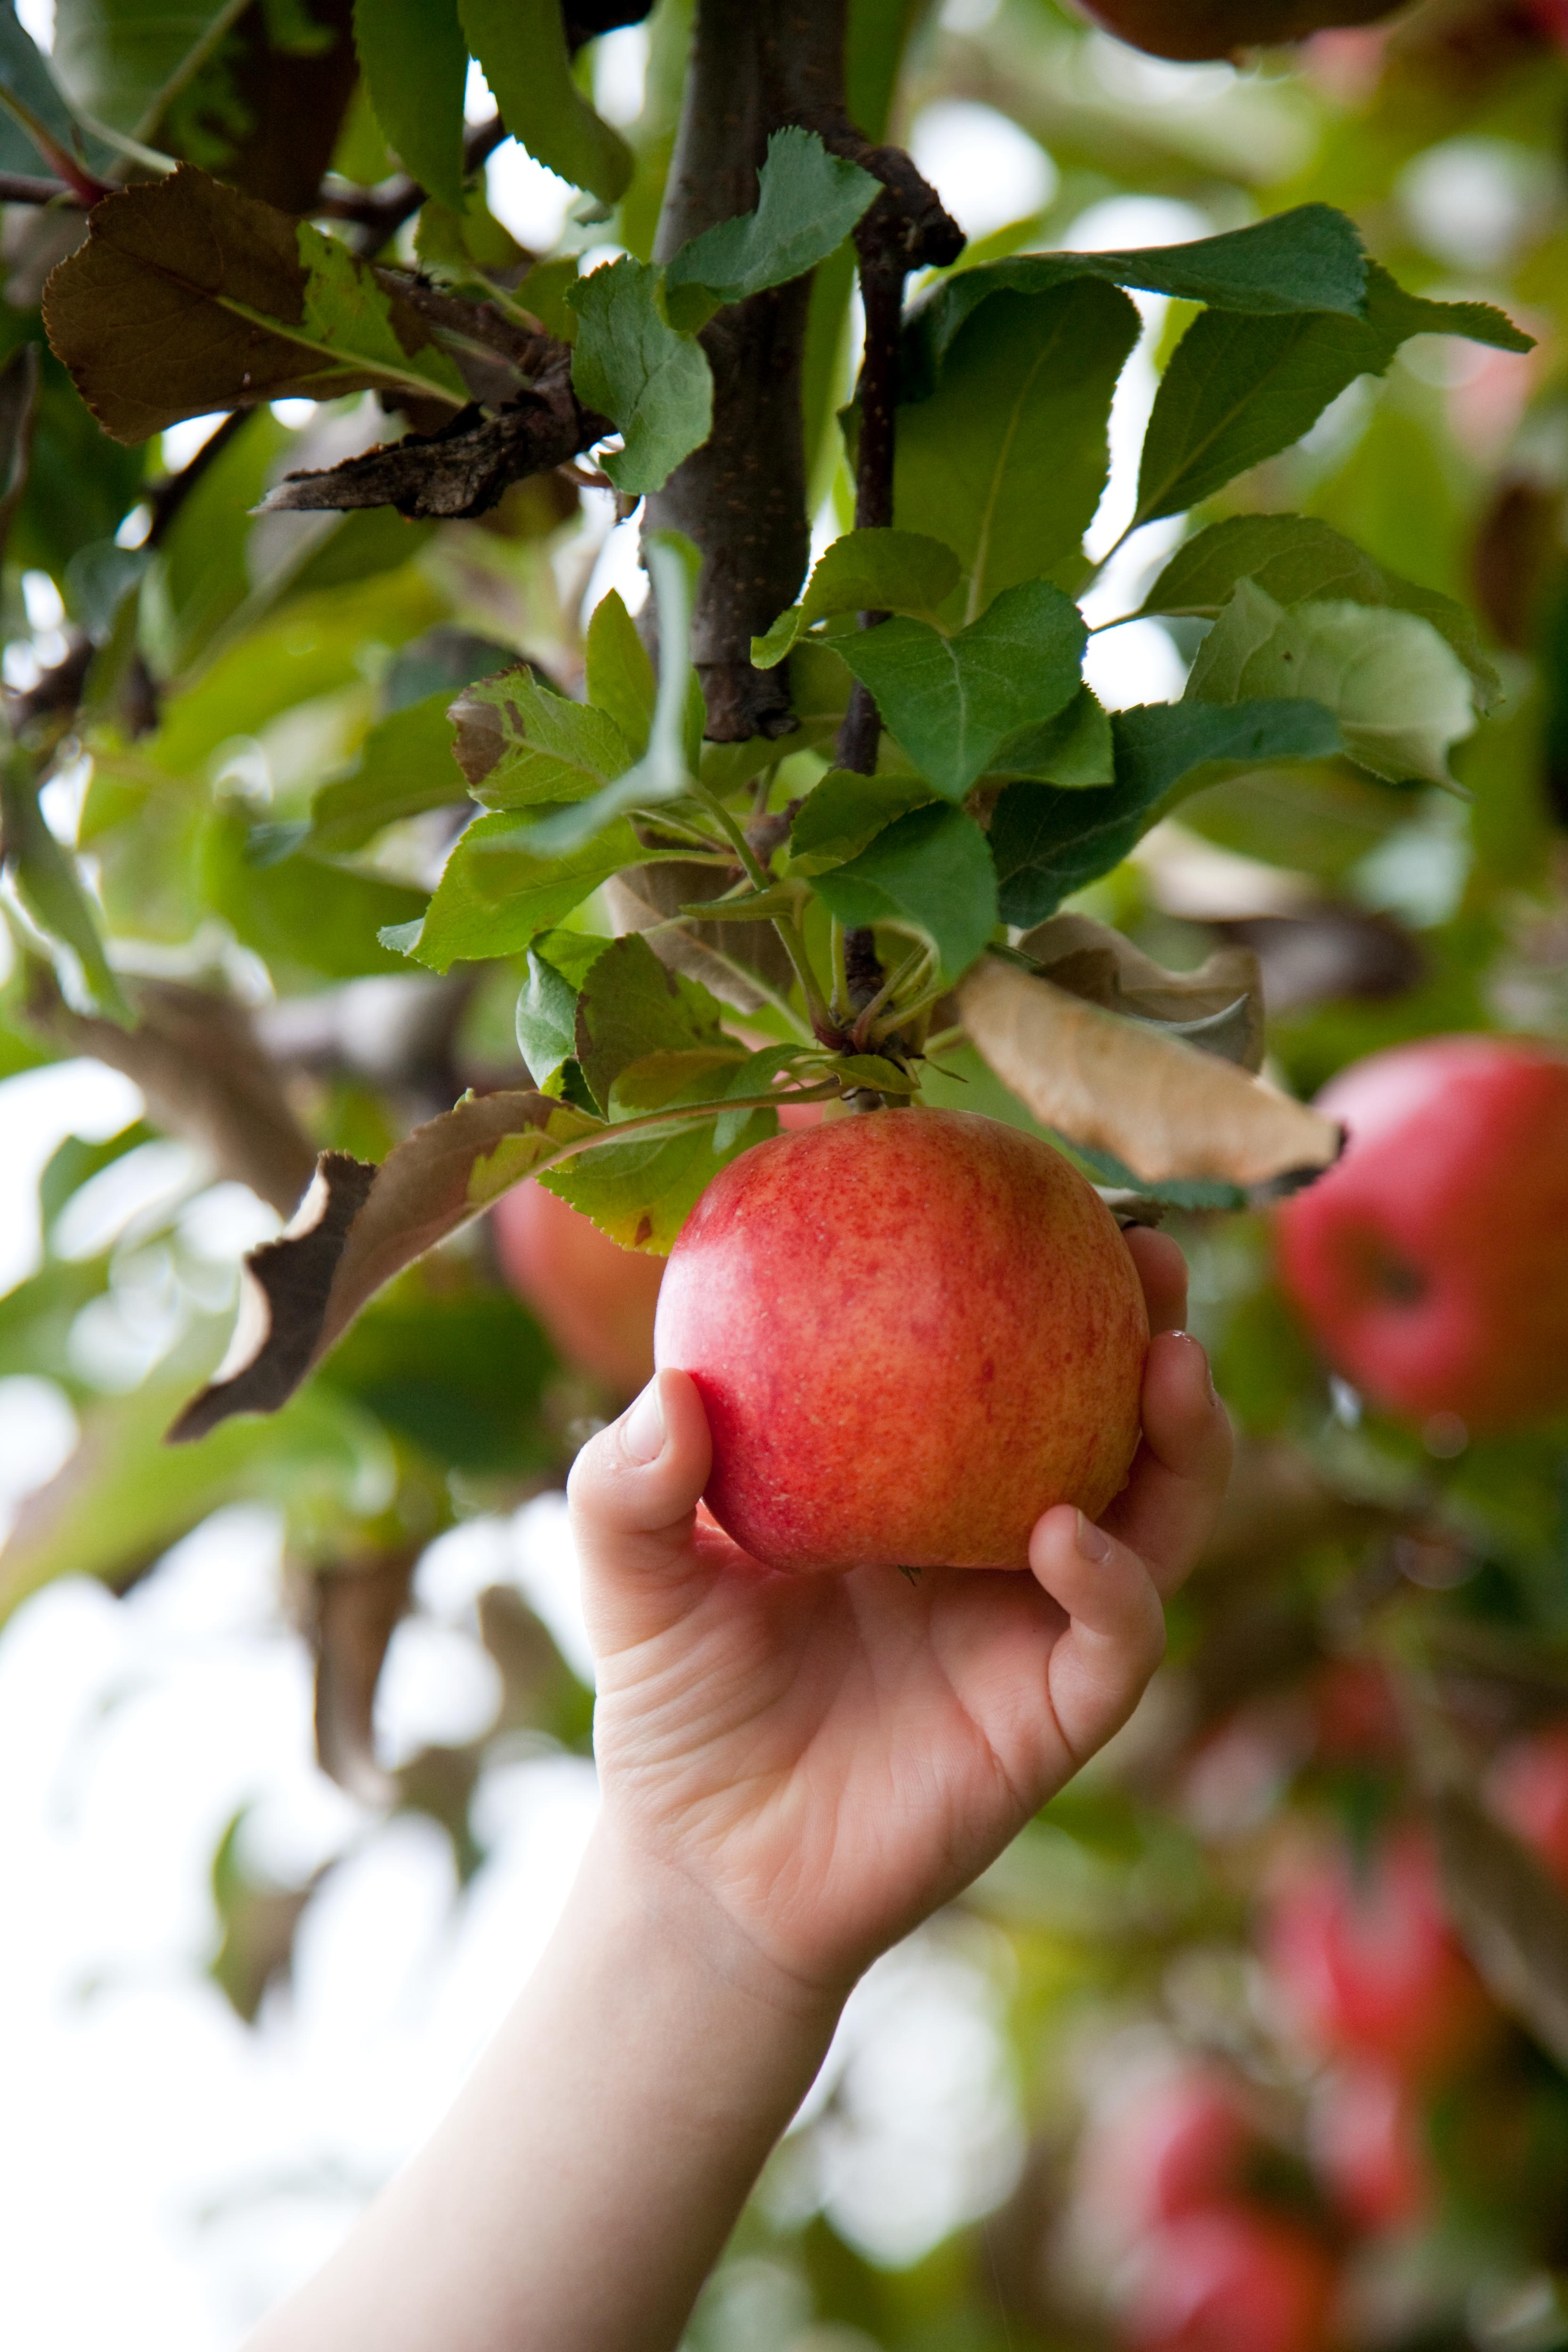 red apple getting hand-picked from tree